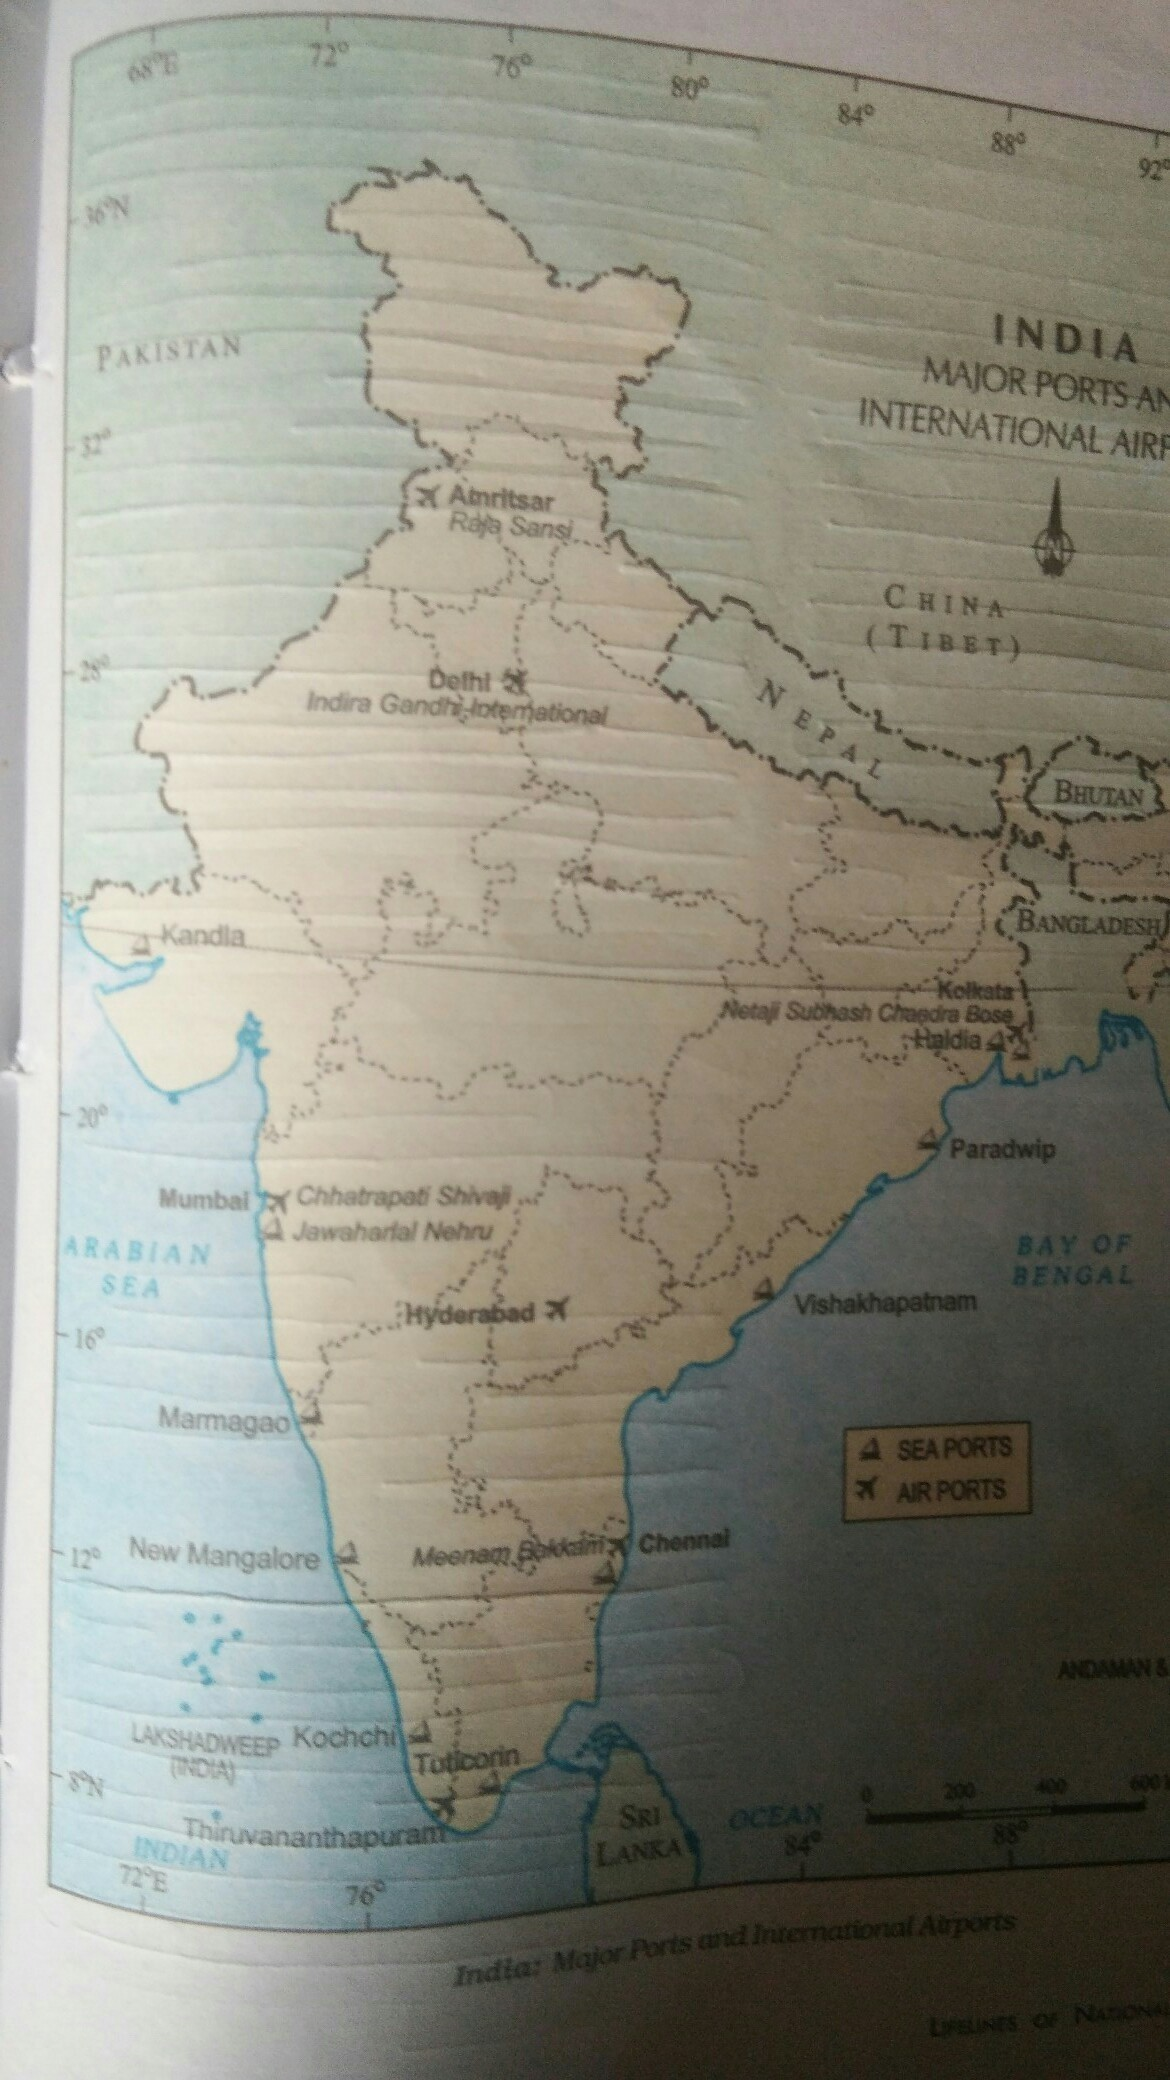 Mark The Major Ports Of India On A Outline Map Of India Idendify